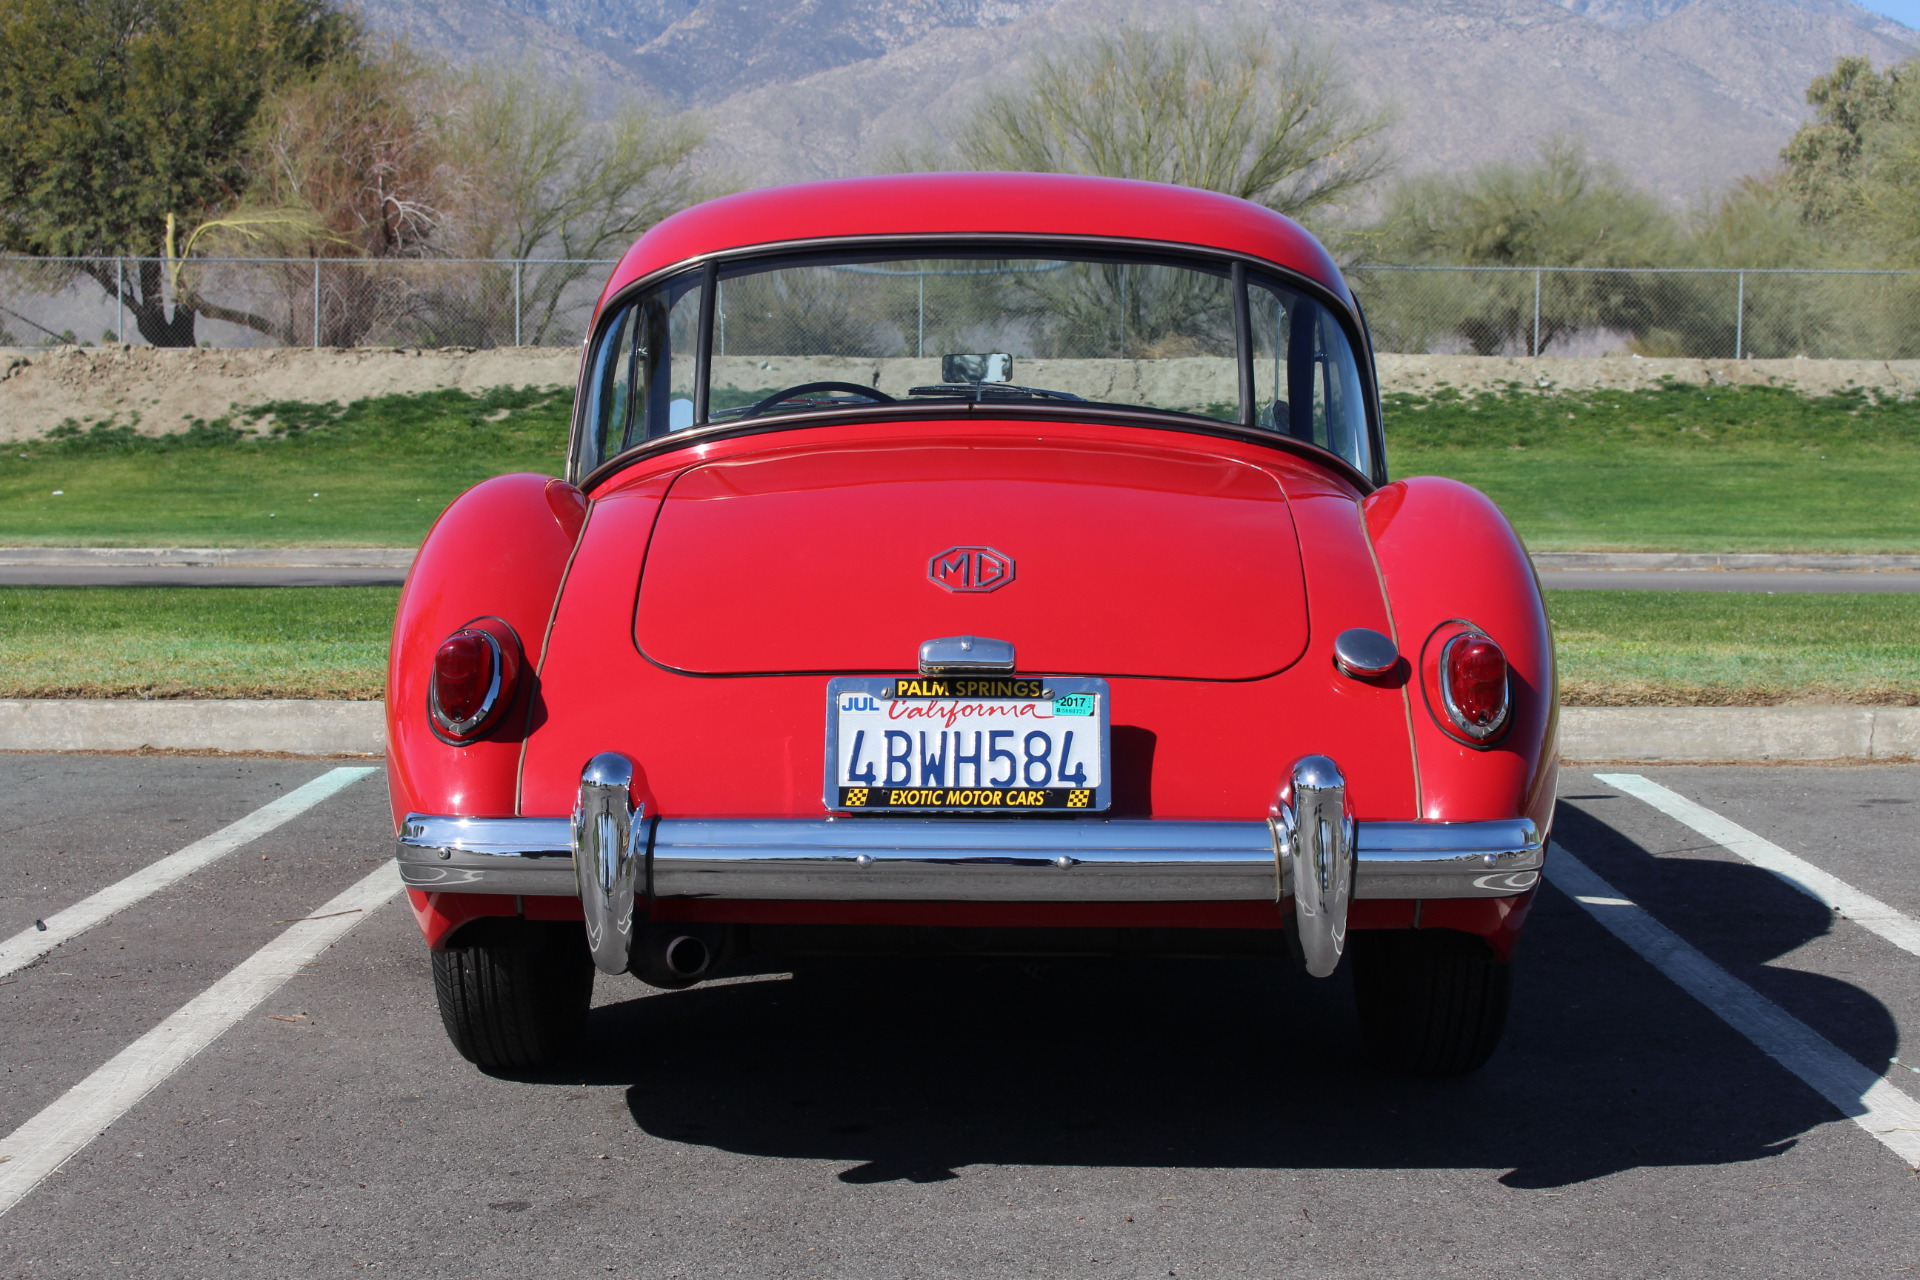 Used-1959-MG-A-COUPE